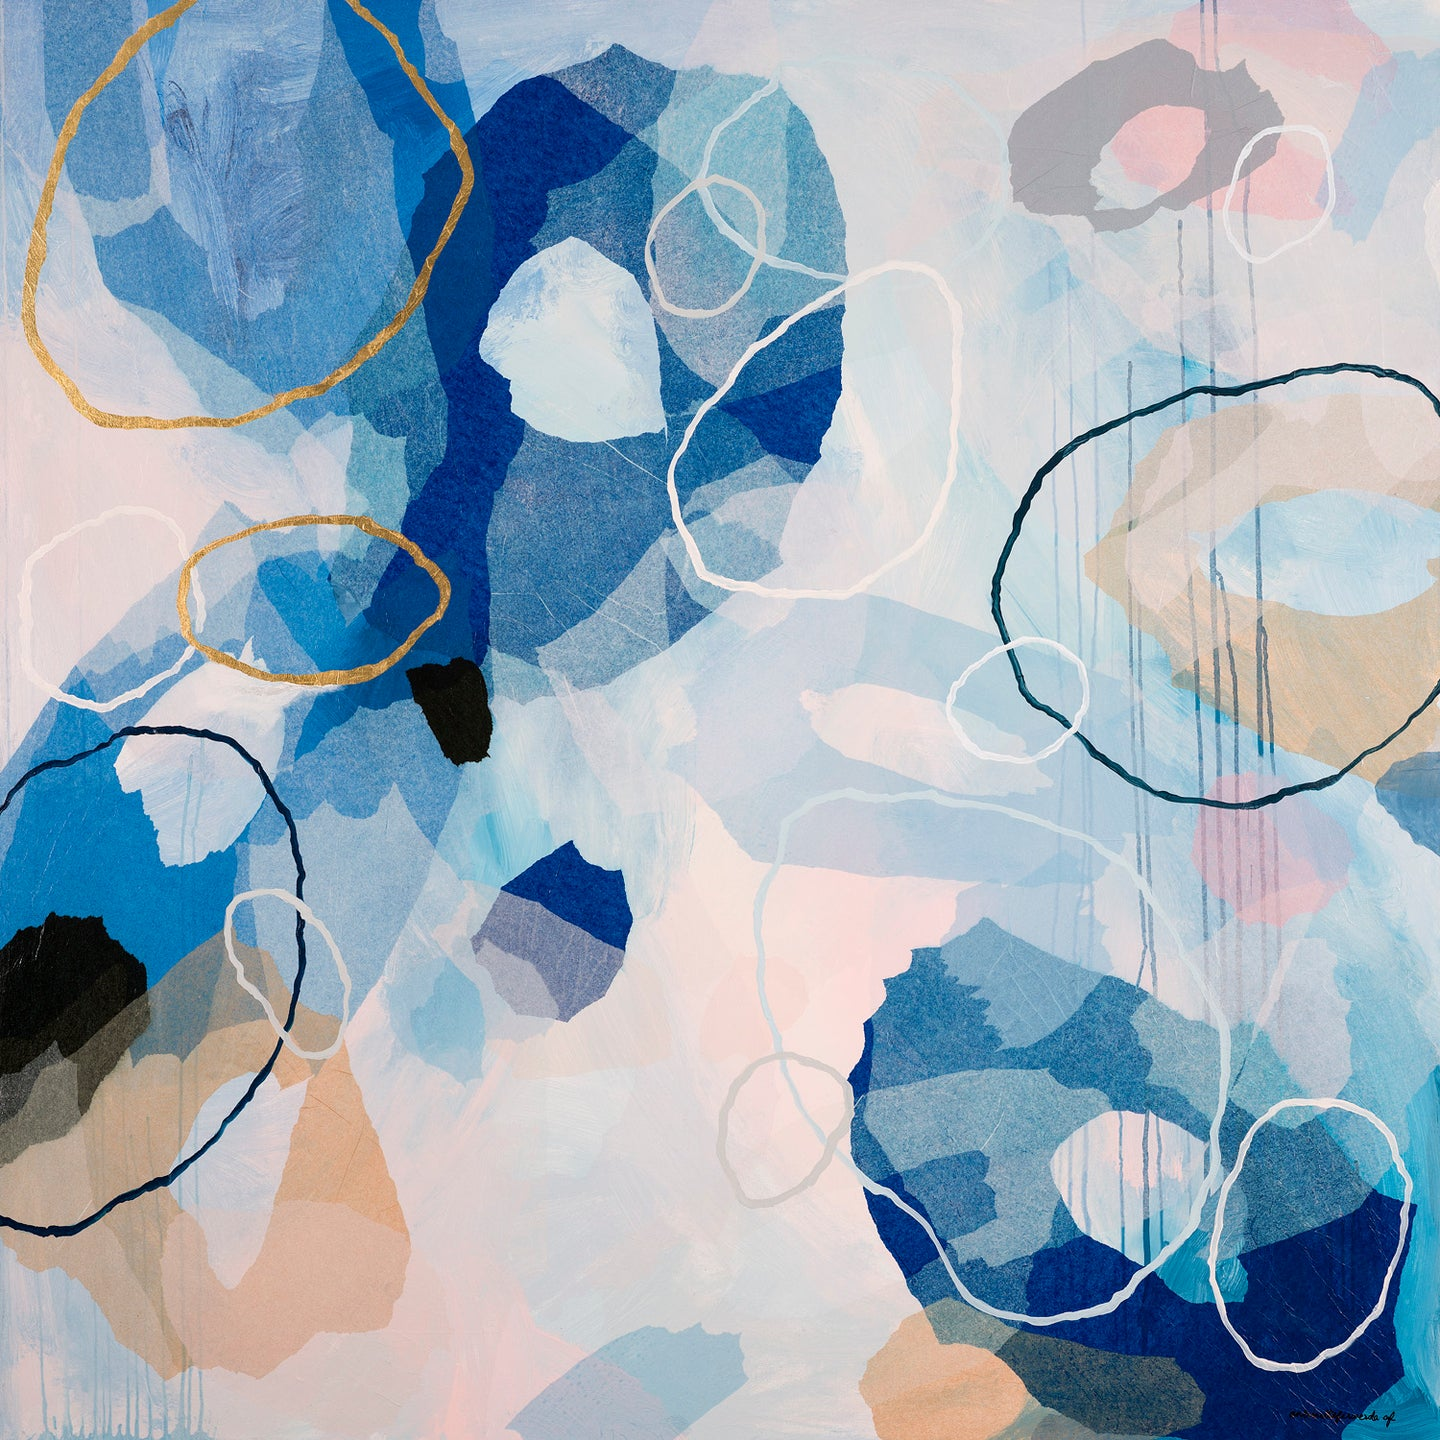 Ocean Pools #2 is a limited edition print by Antoinette Ferwerda and part of the Water Collection